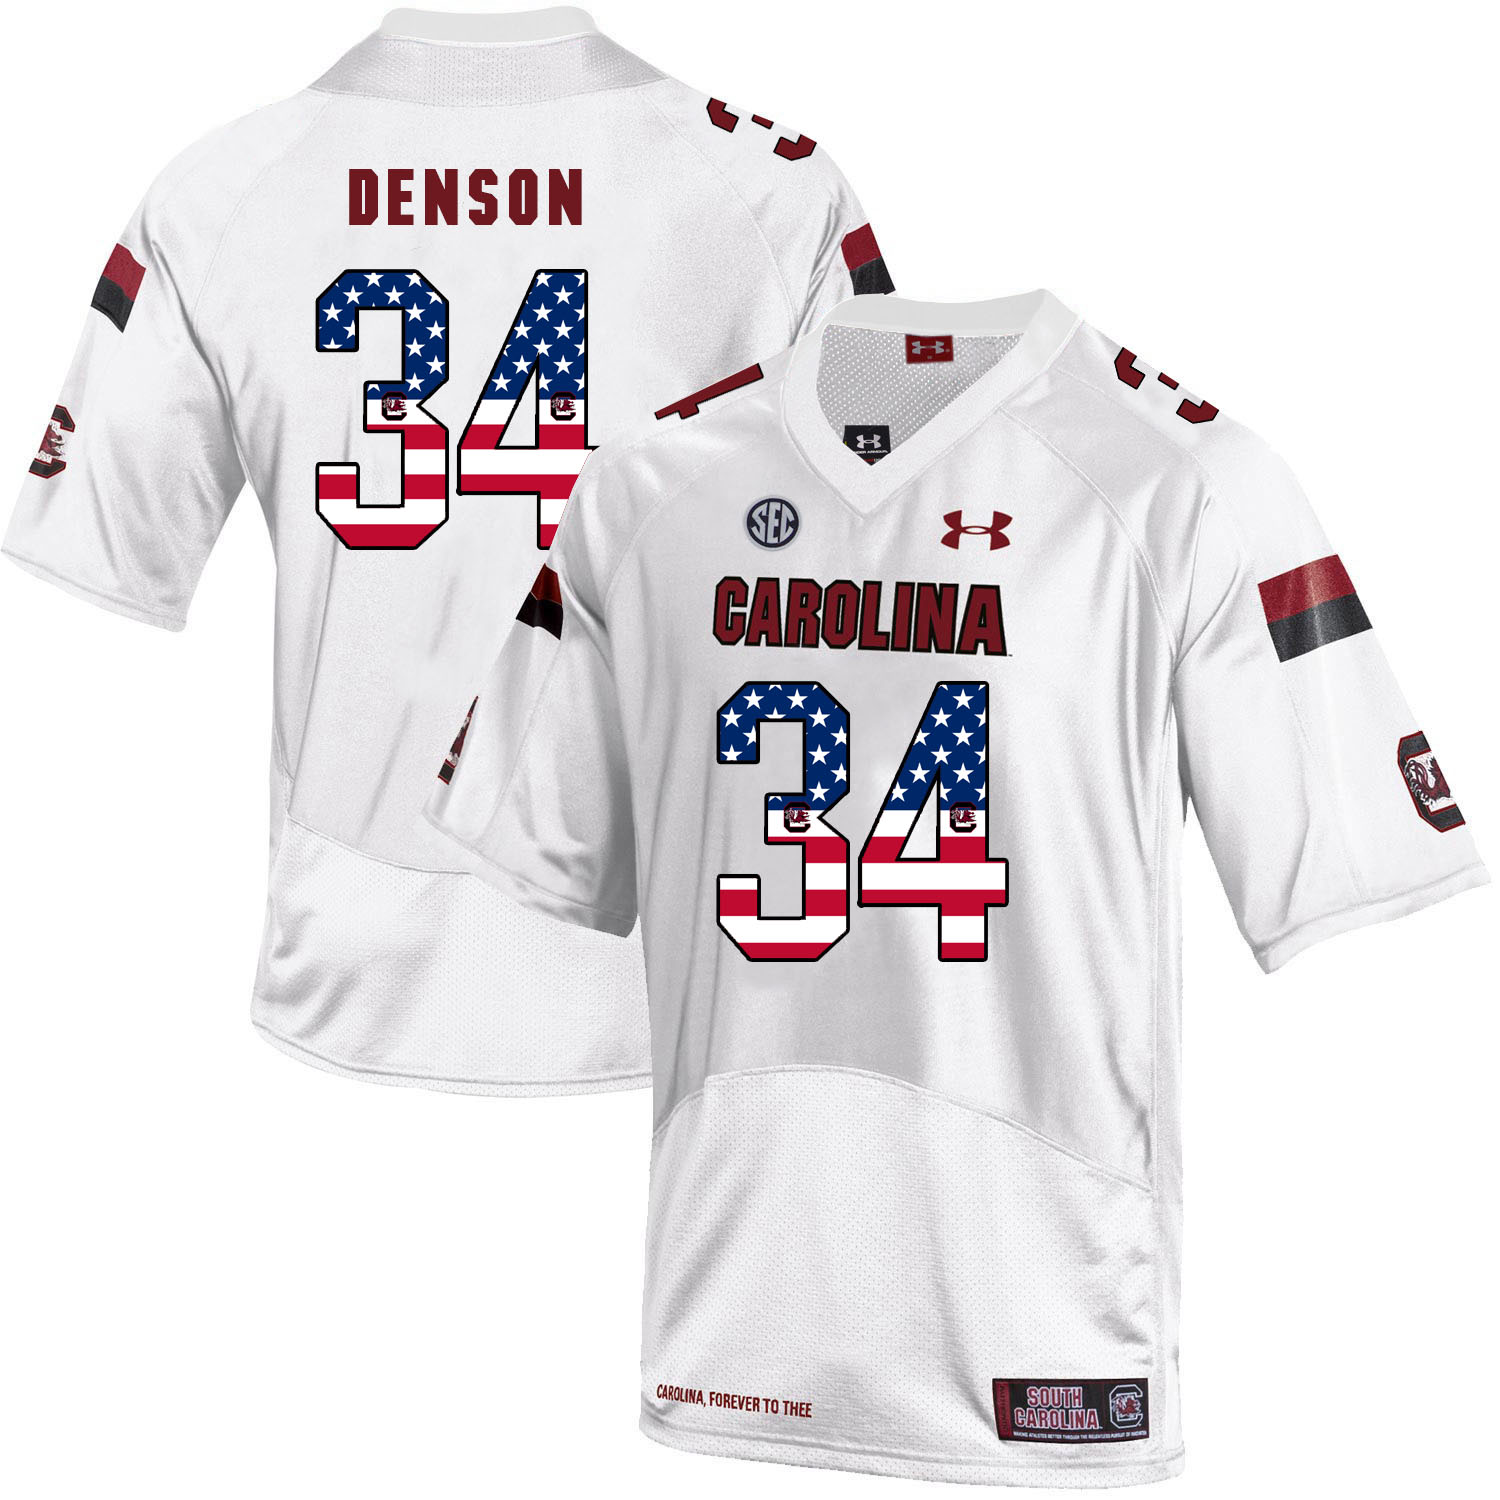 South Carolina Gamecocks 34 Mon Denson White USA Flag College Football Jersey